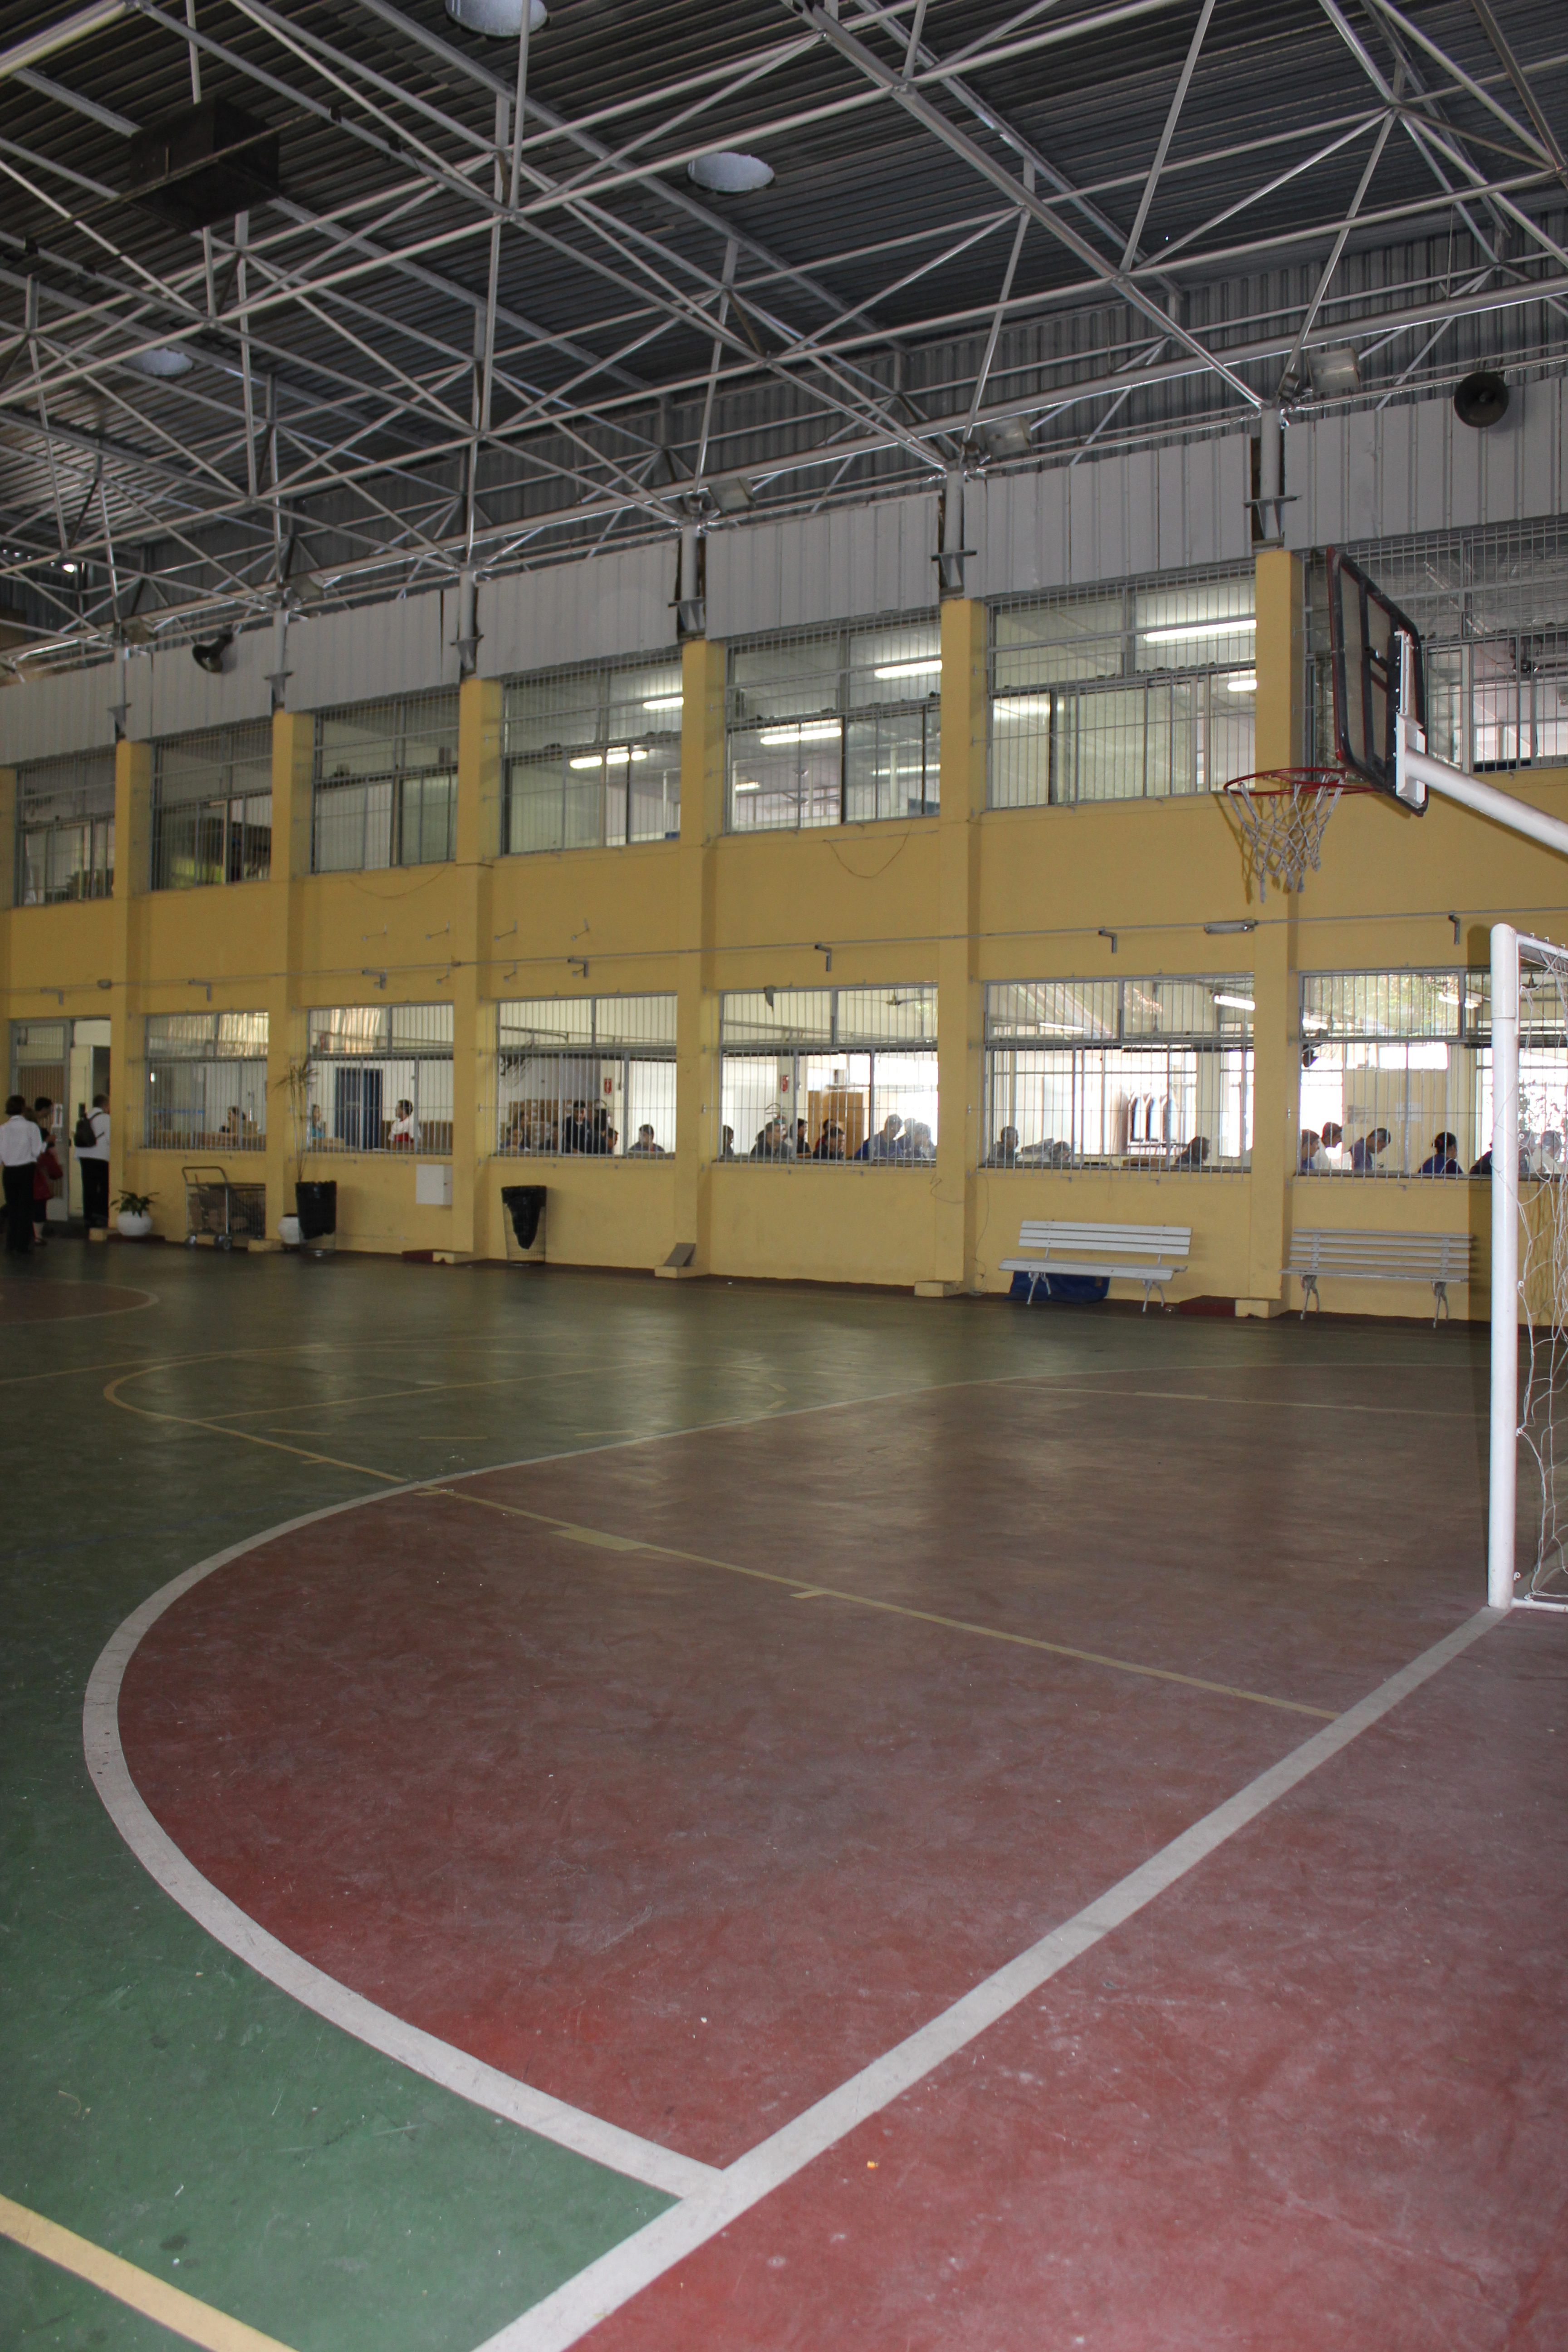 Indoor basketball court looking into windows of vocational training area